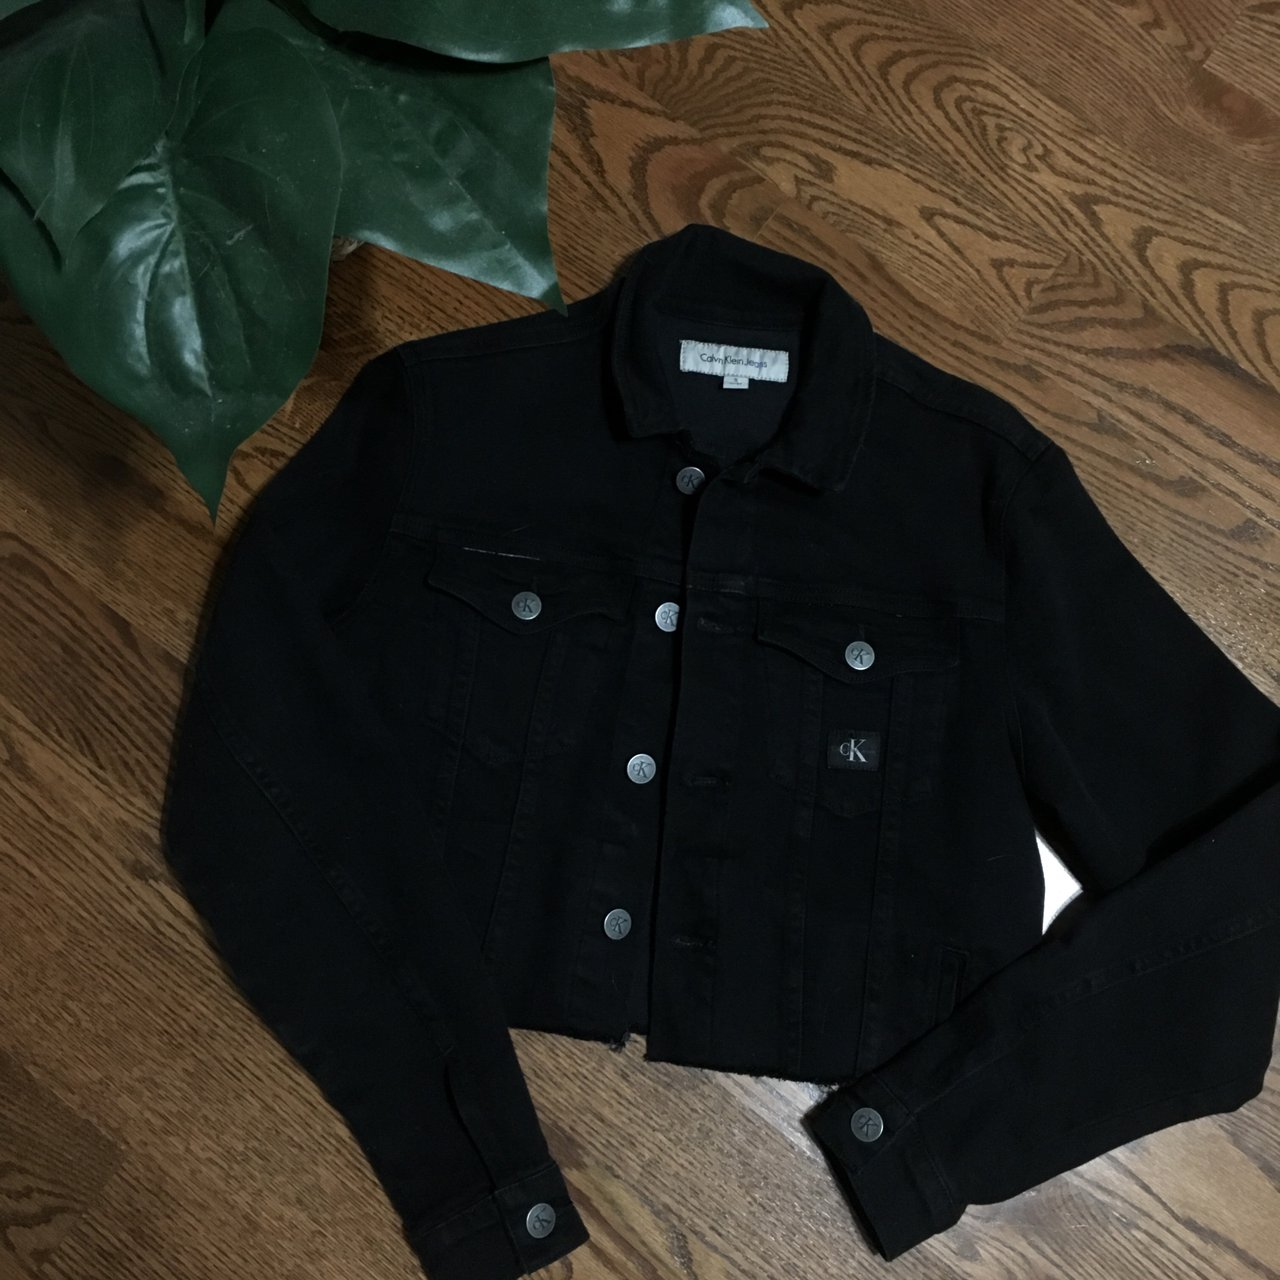 340e849a09d8d3 I thrifted this perfect condition Calvin Klein denim jacket - Depop